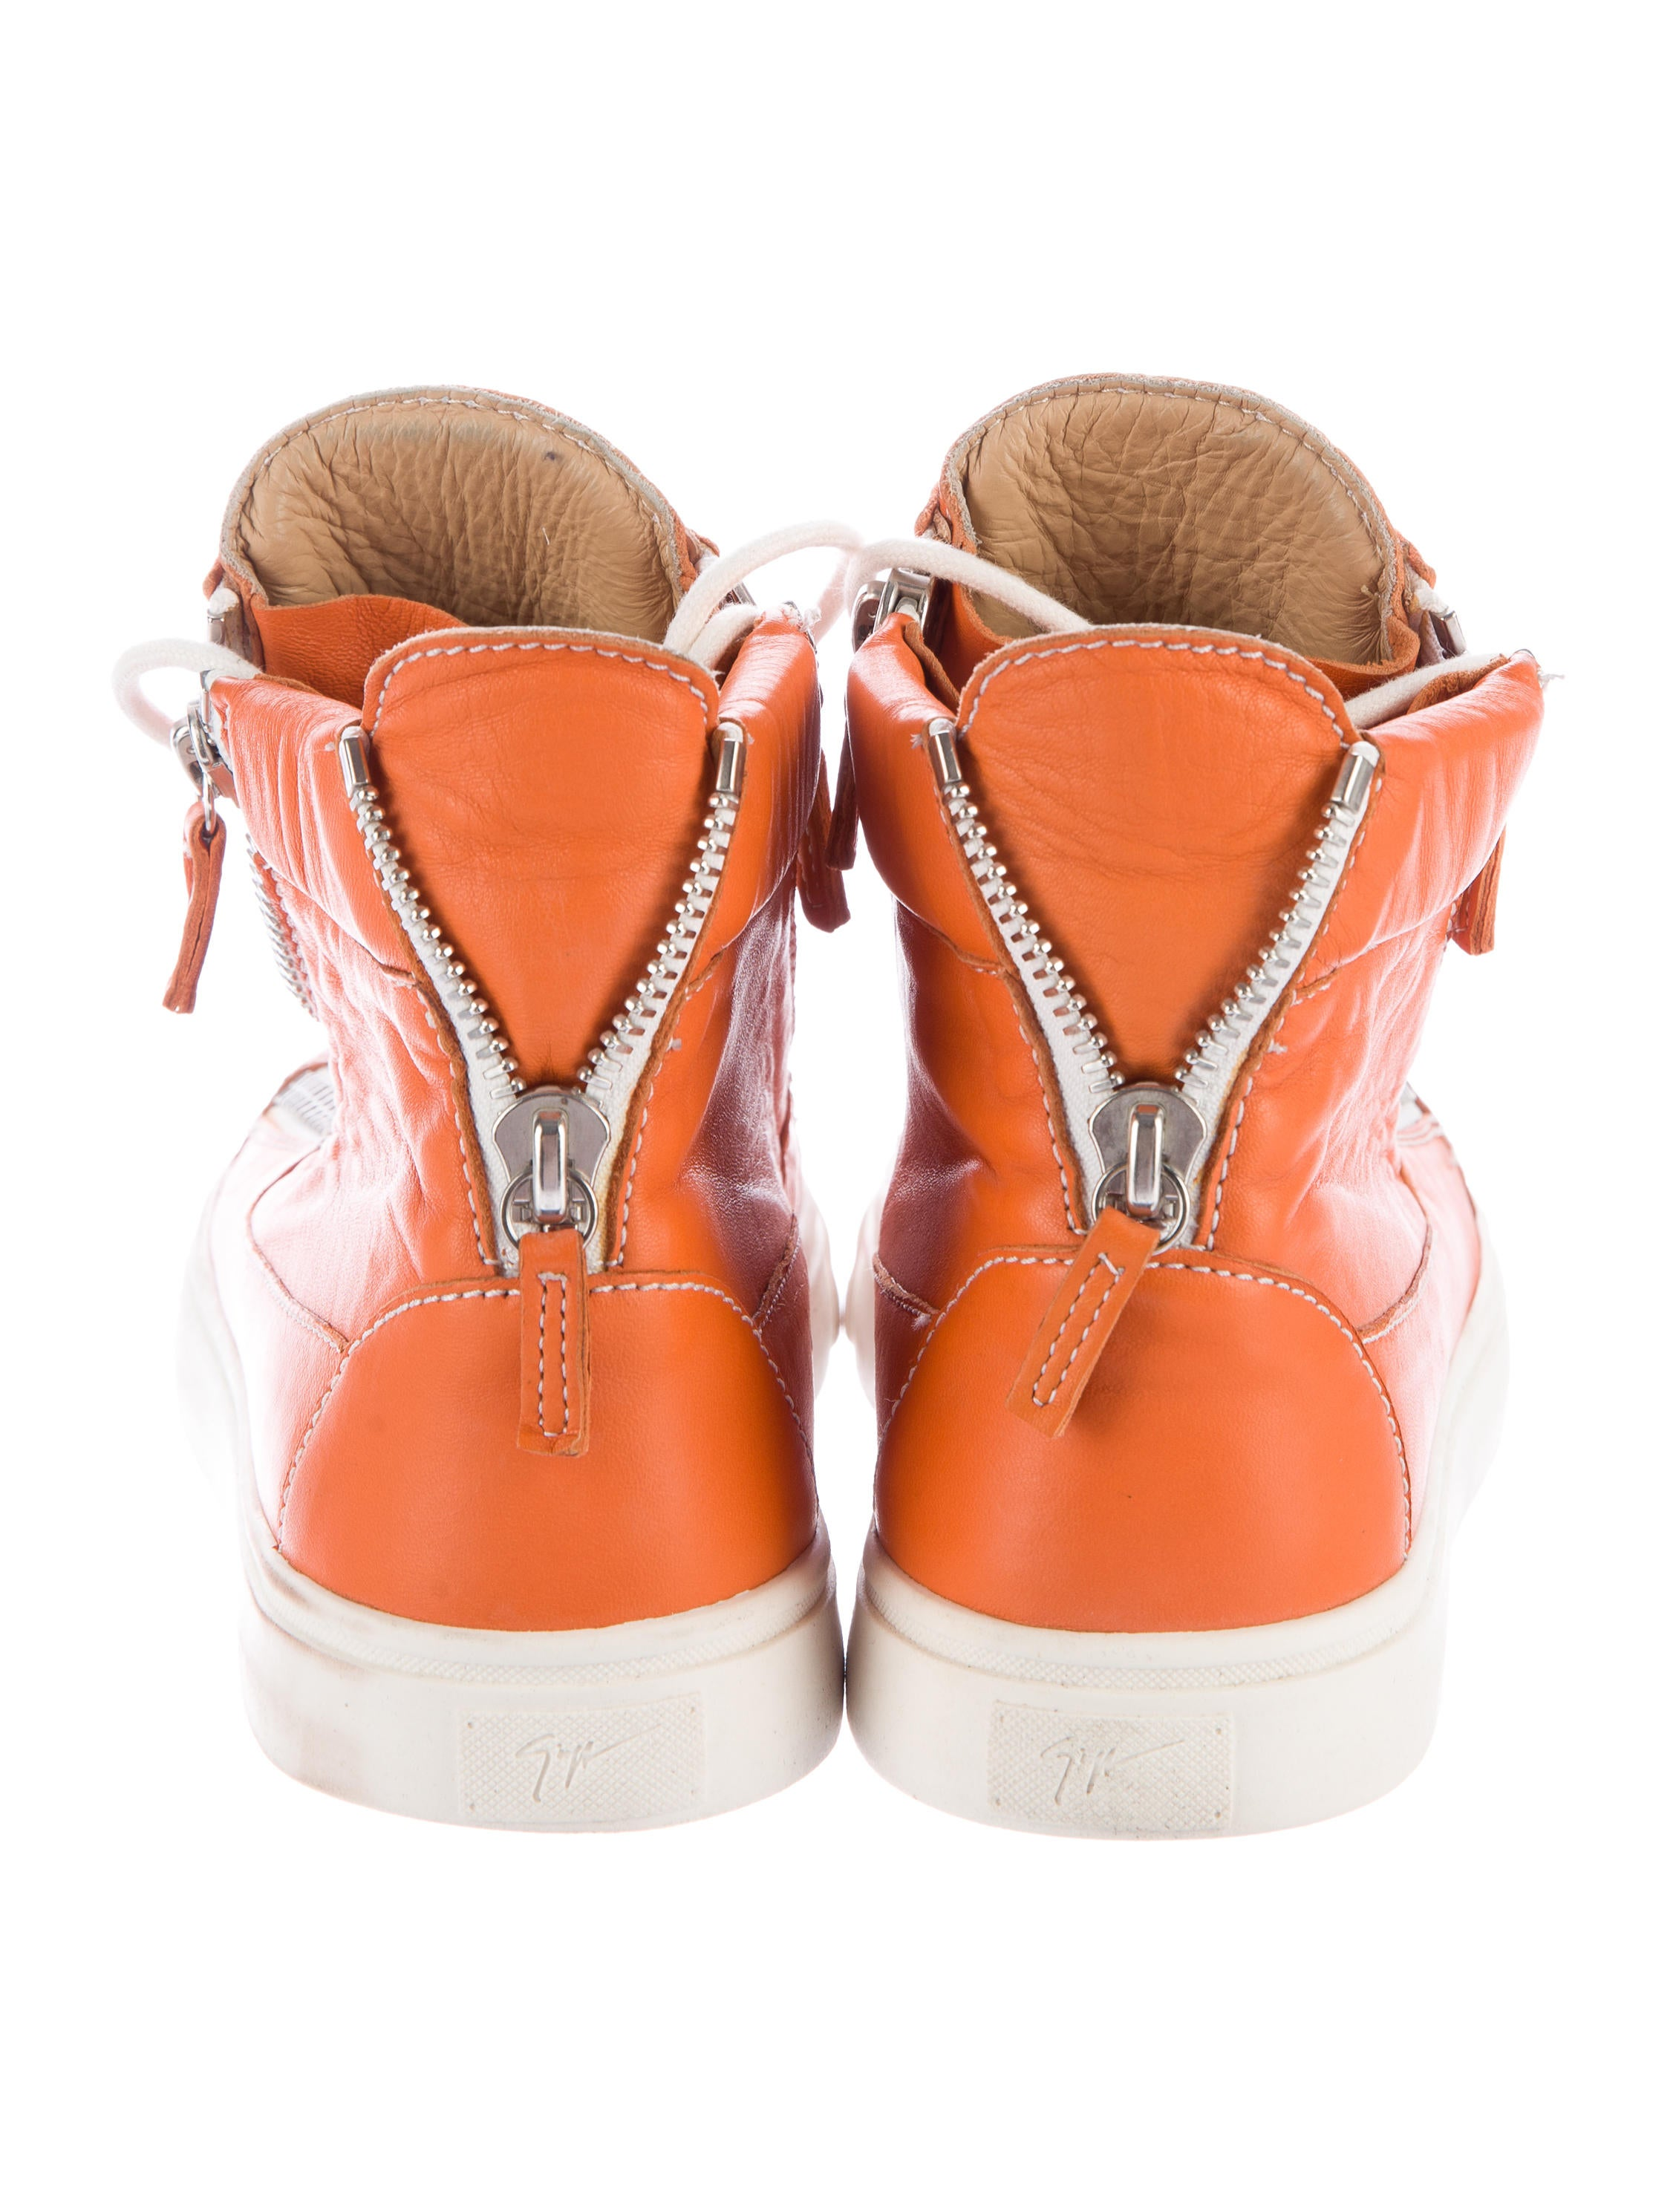 Giuseppe Zanotti Leather High Top Sneakers Shoes  : GIU361834enlarged from www.therealreal.com size 2257 x 2979 jpeg 461kB